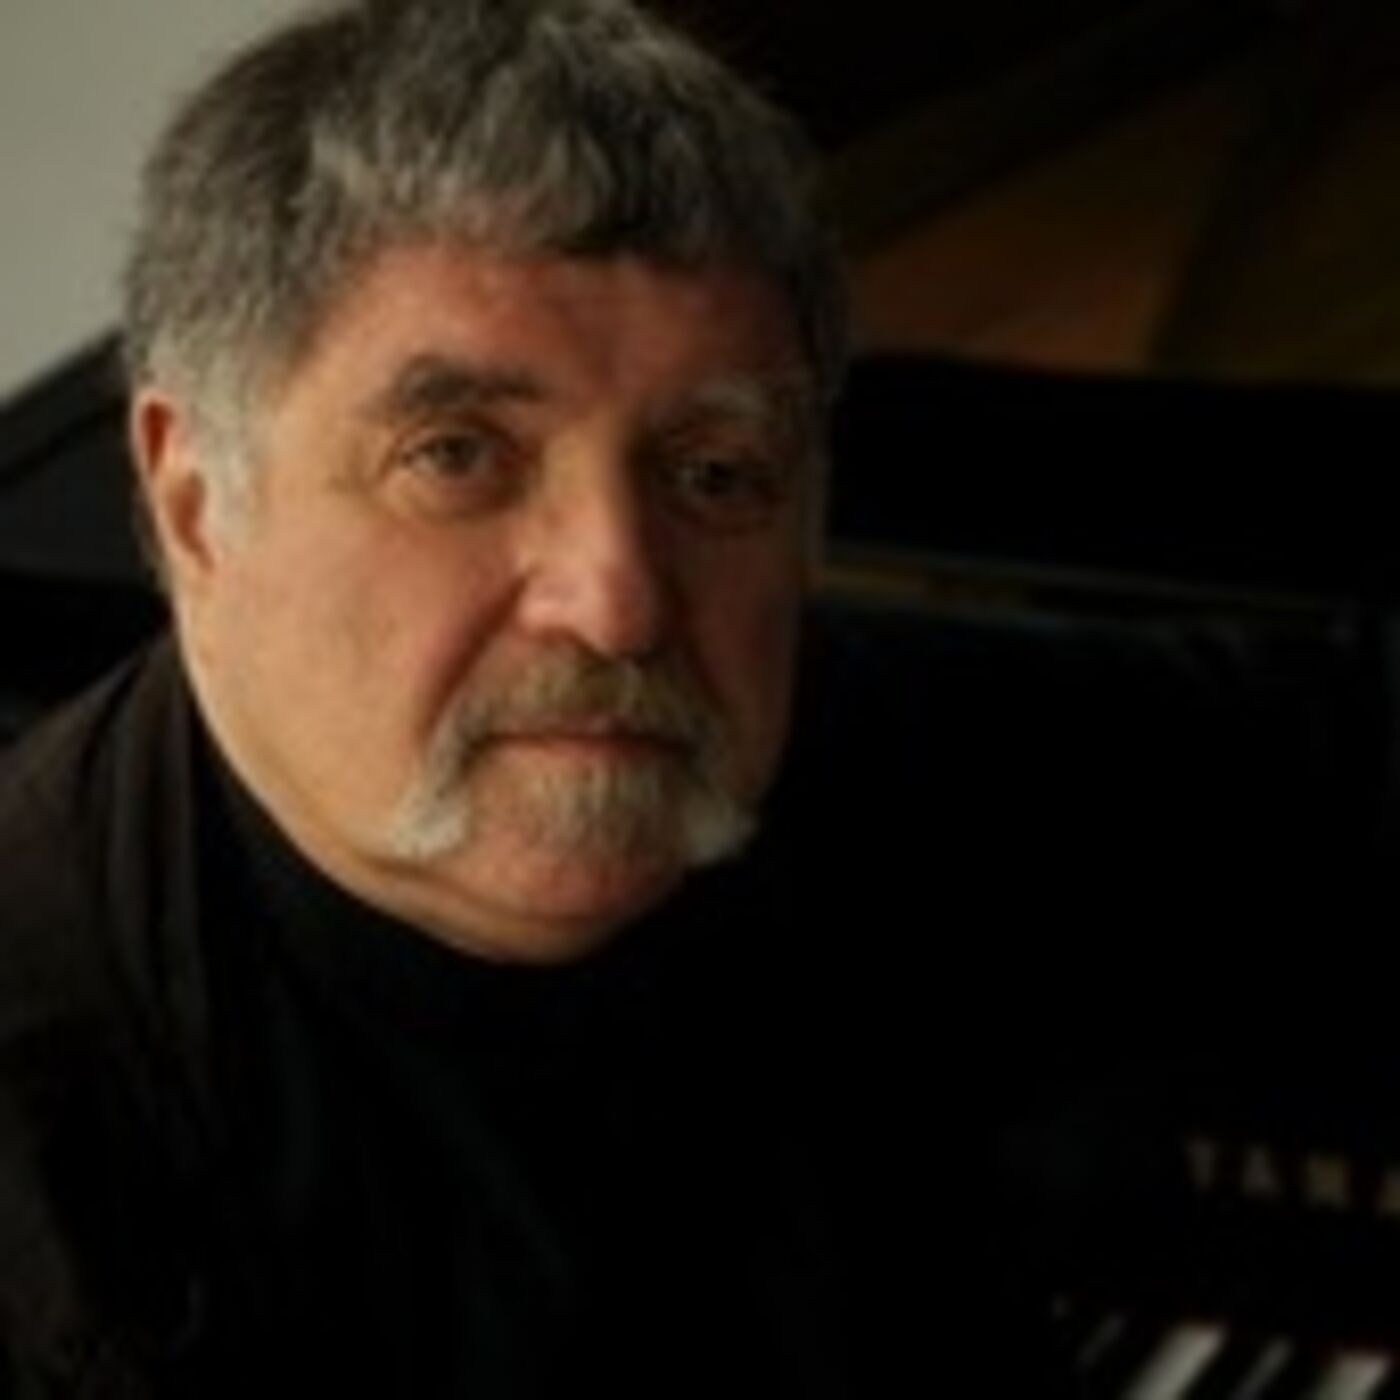 Episode 8 - A conversation with veteran and highly esteemed pianist, composer, bandleader, and educator, Hal Galper.